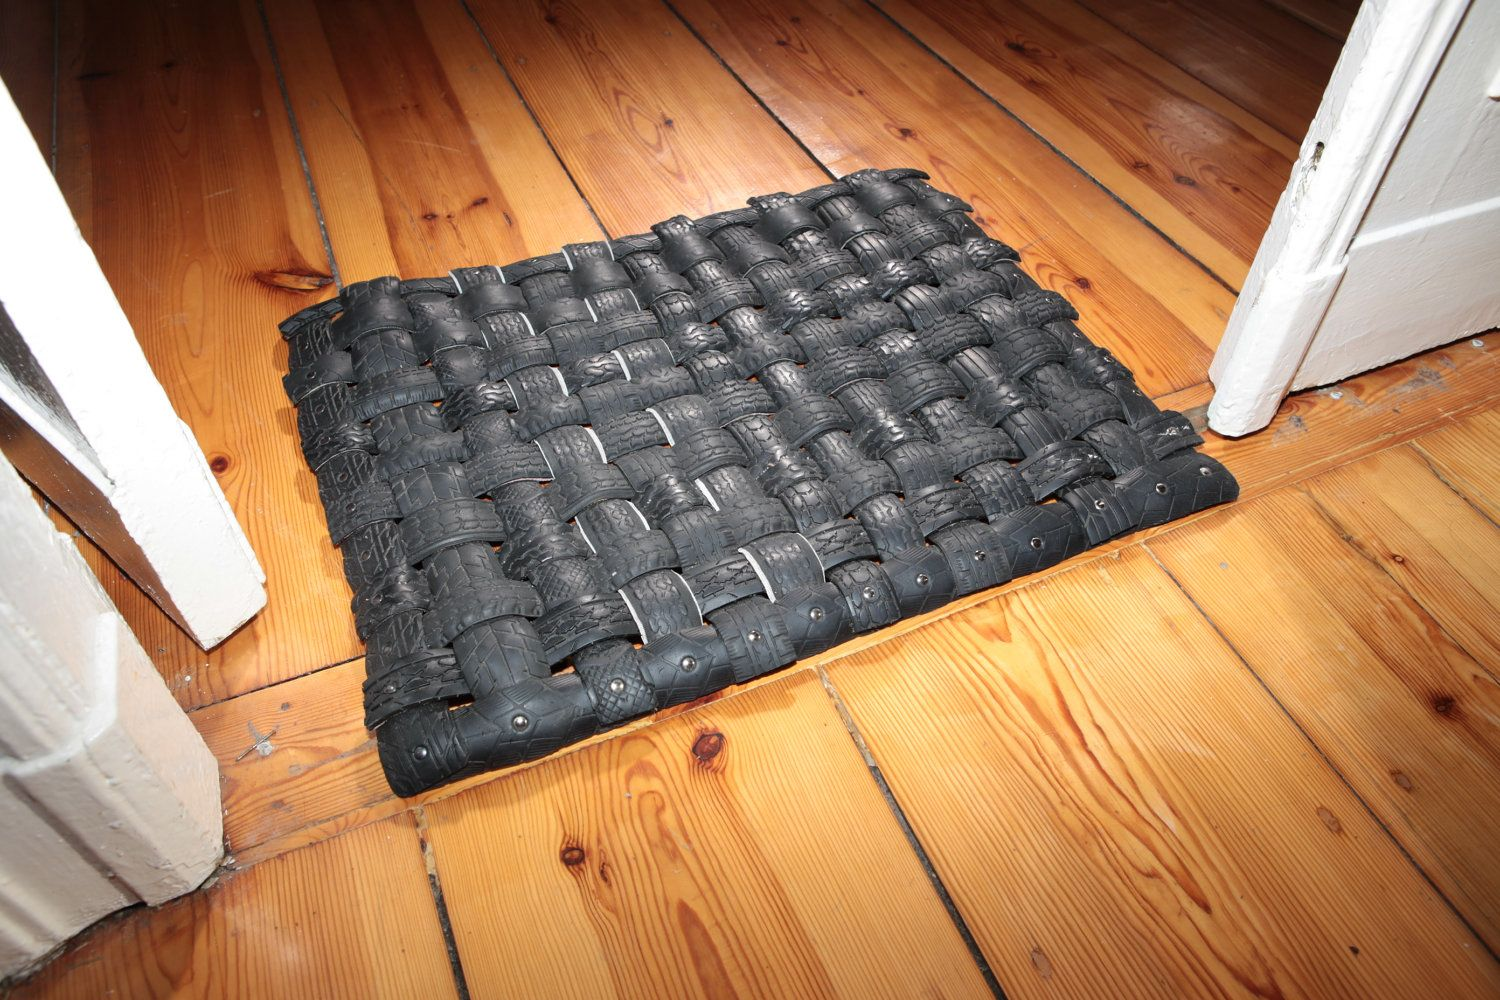 Handamade Upcycled Recycled Tire Doormat By Tirebelt Com 29 00 Via Etsy Tyres Recycle Recycled Bike Parts Upcycle Tires